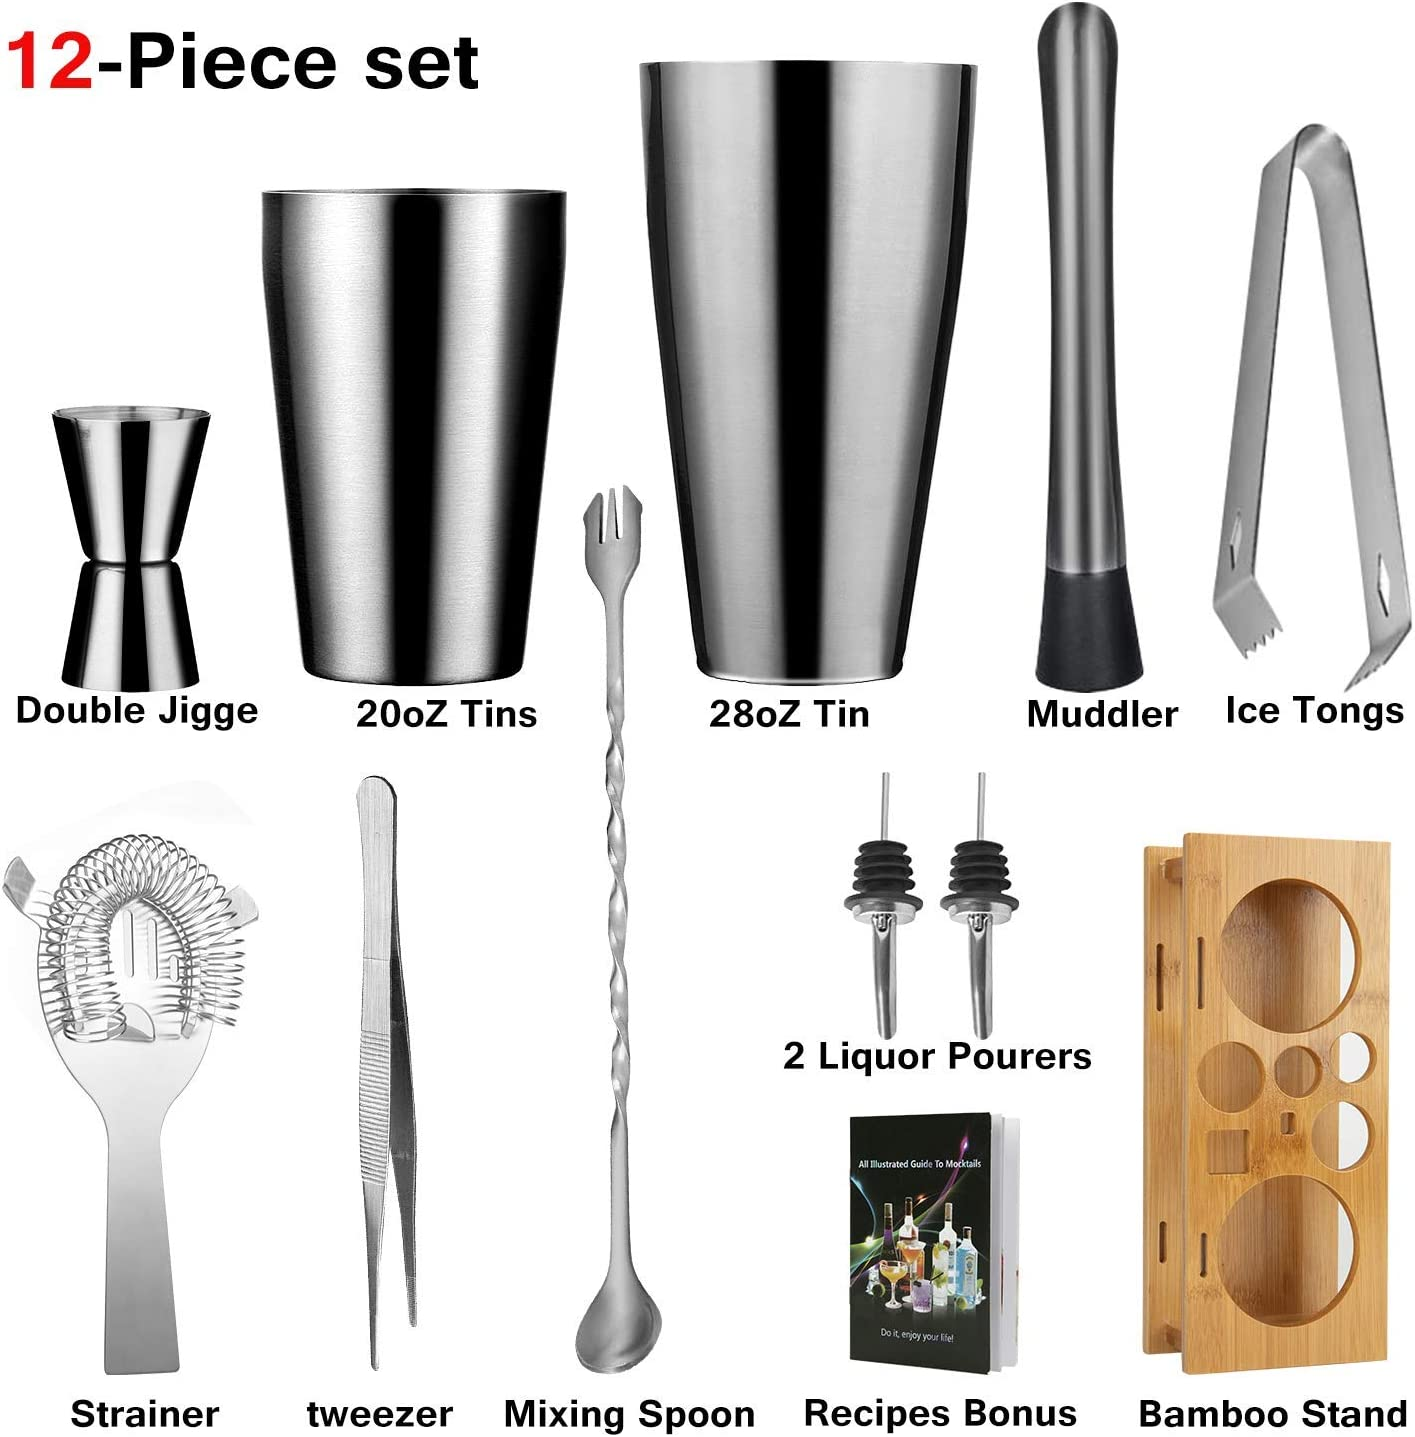 Exclusive Recipes Bonus Boston Cocktail Shaker Bar Tools Set With Bamboo Stand,28oz//20oz Shaker Set Perfect Bartending Kit for Professional and Amateur Bartenders